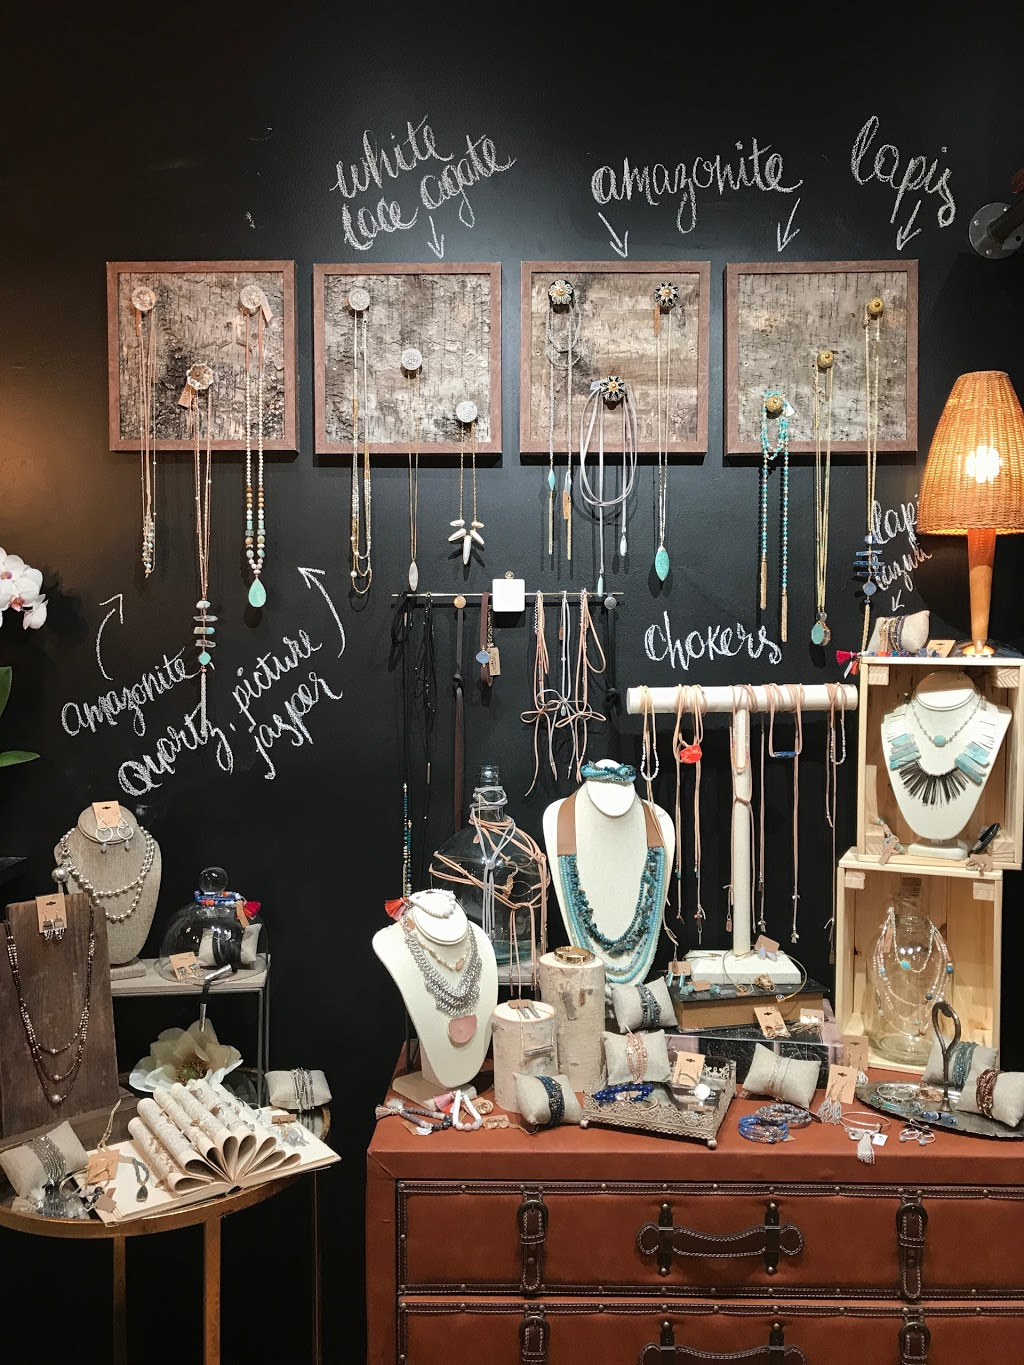 Alchemistry Boutique - clothing store  | Photo 5 of 10 | Address: 124 S Main St, New Hope, PA 18938, USA | Phone: (215) 693-1856